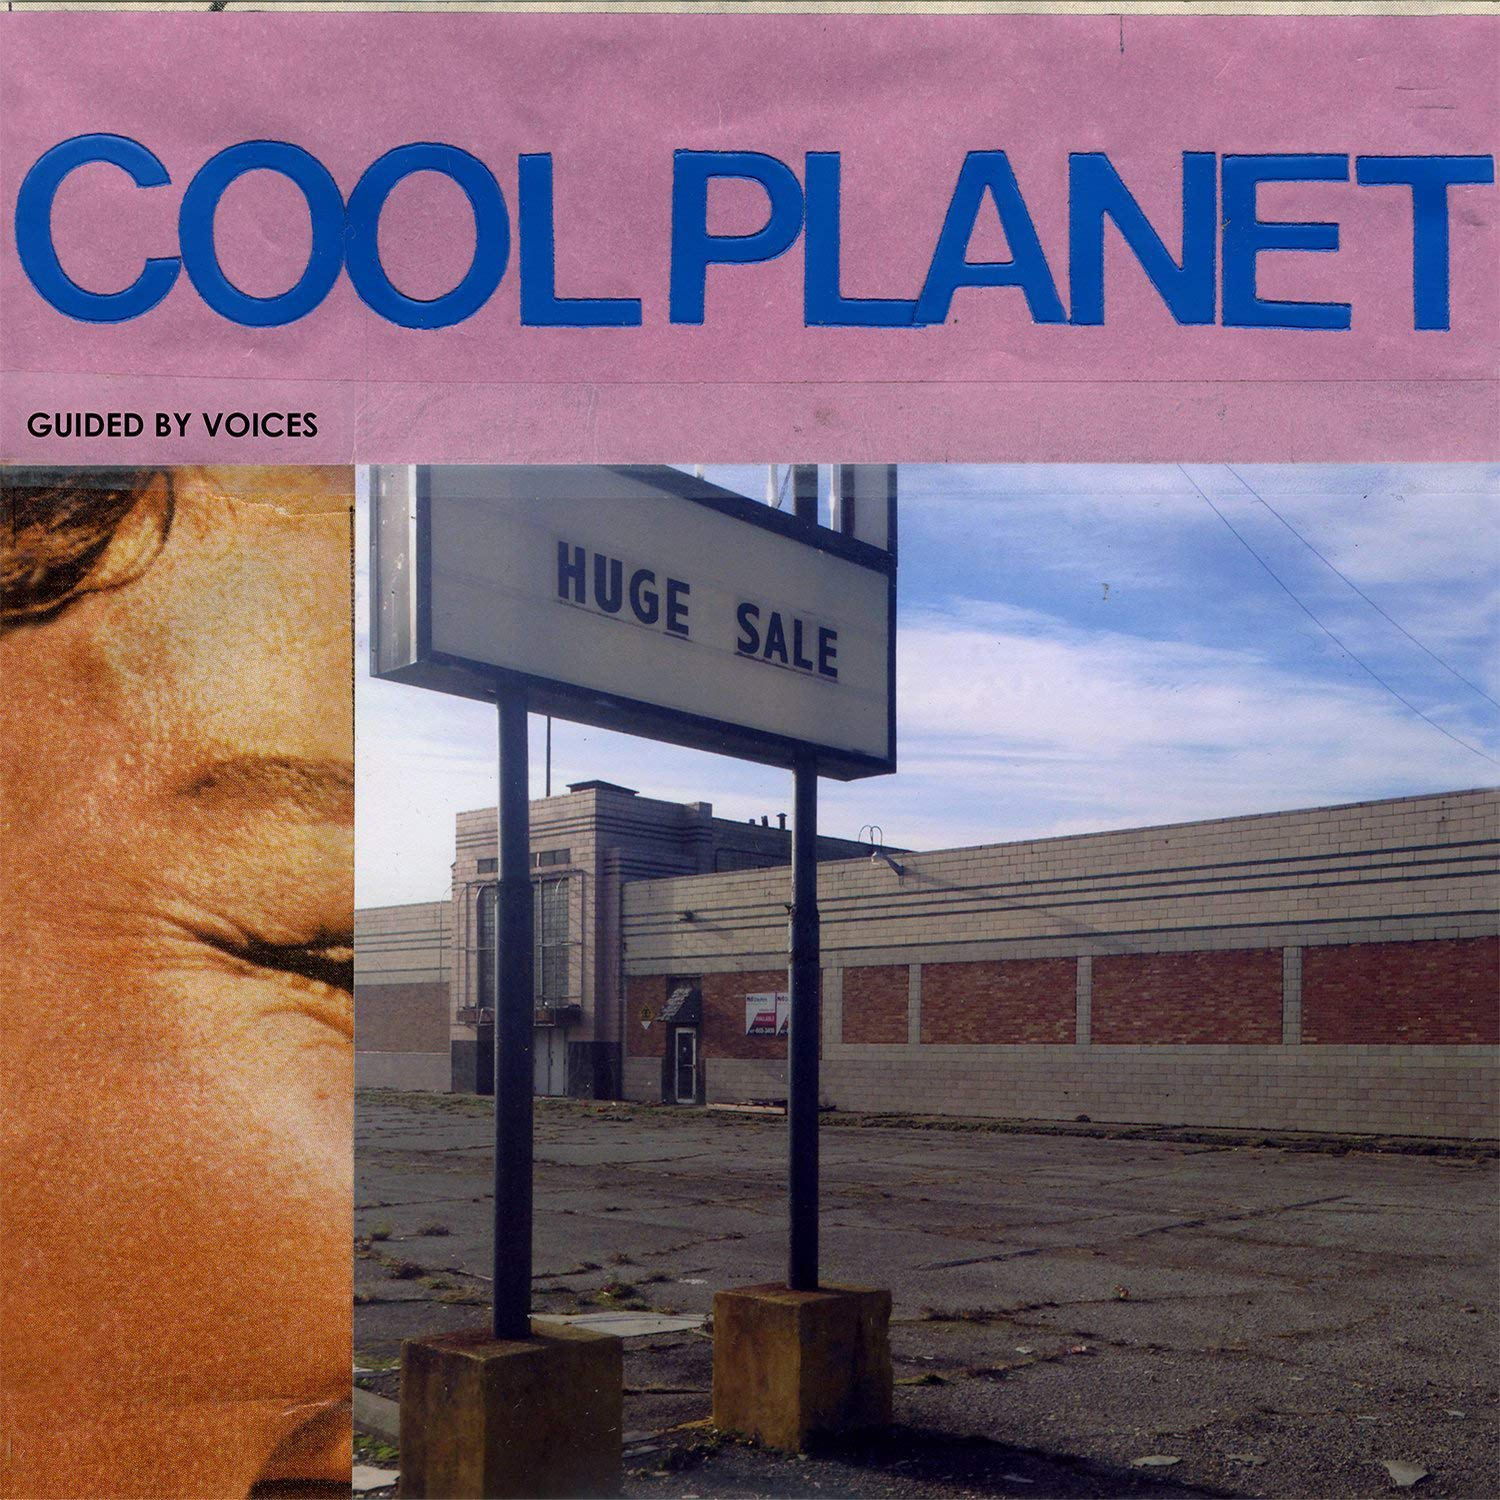 Guided by Voices, Cool Planet